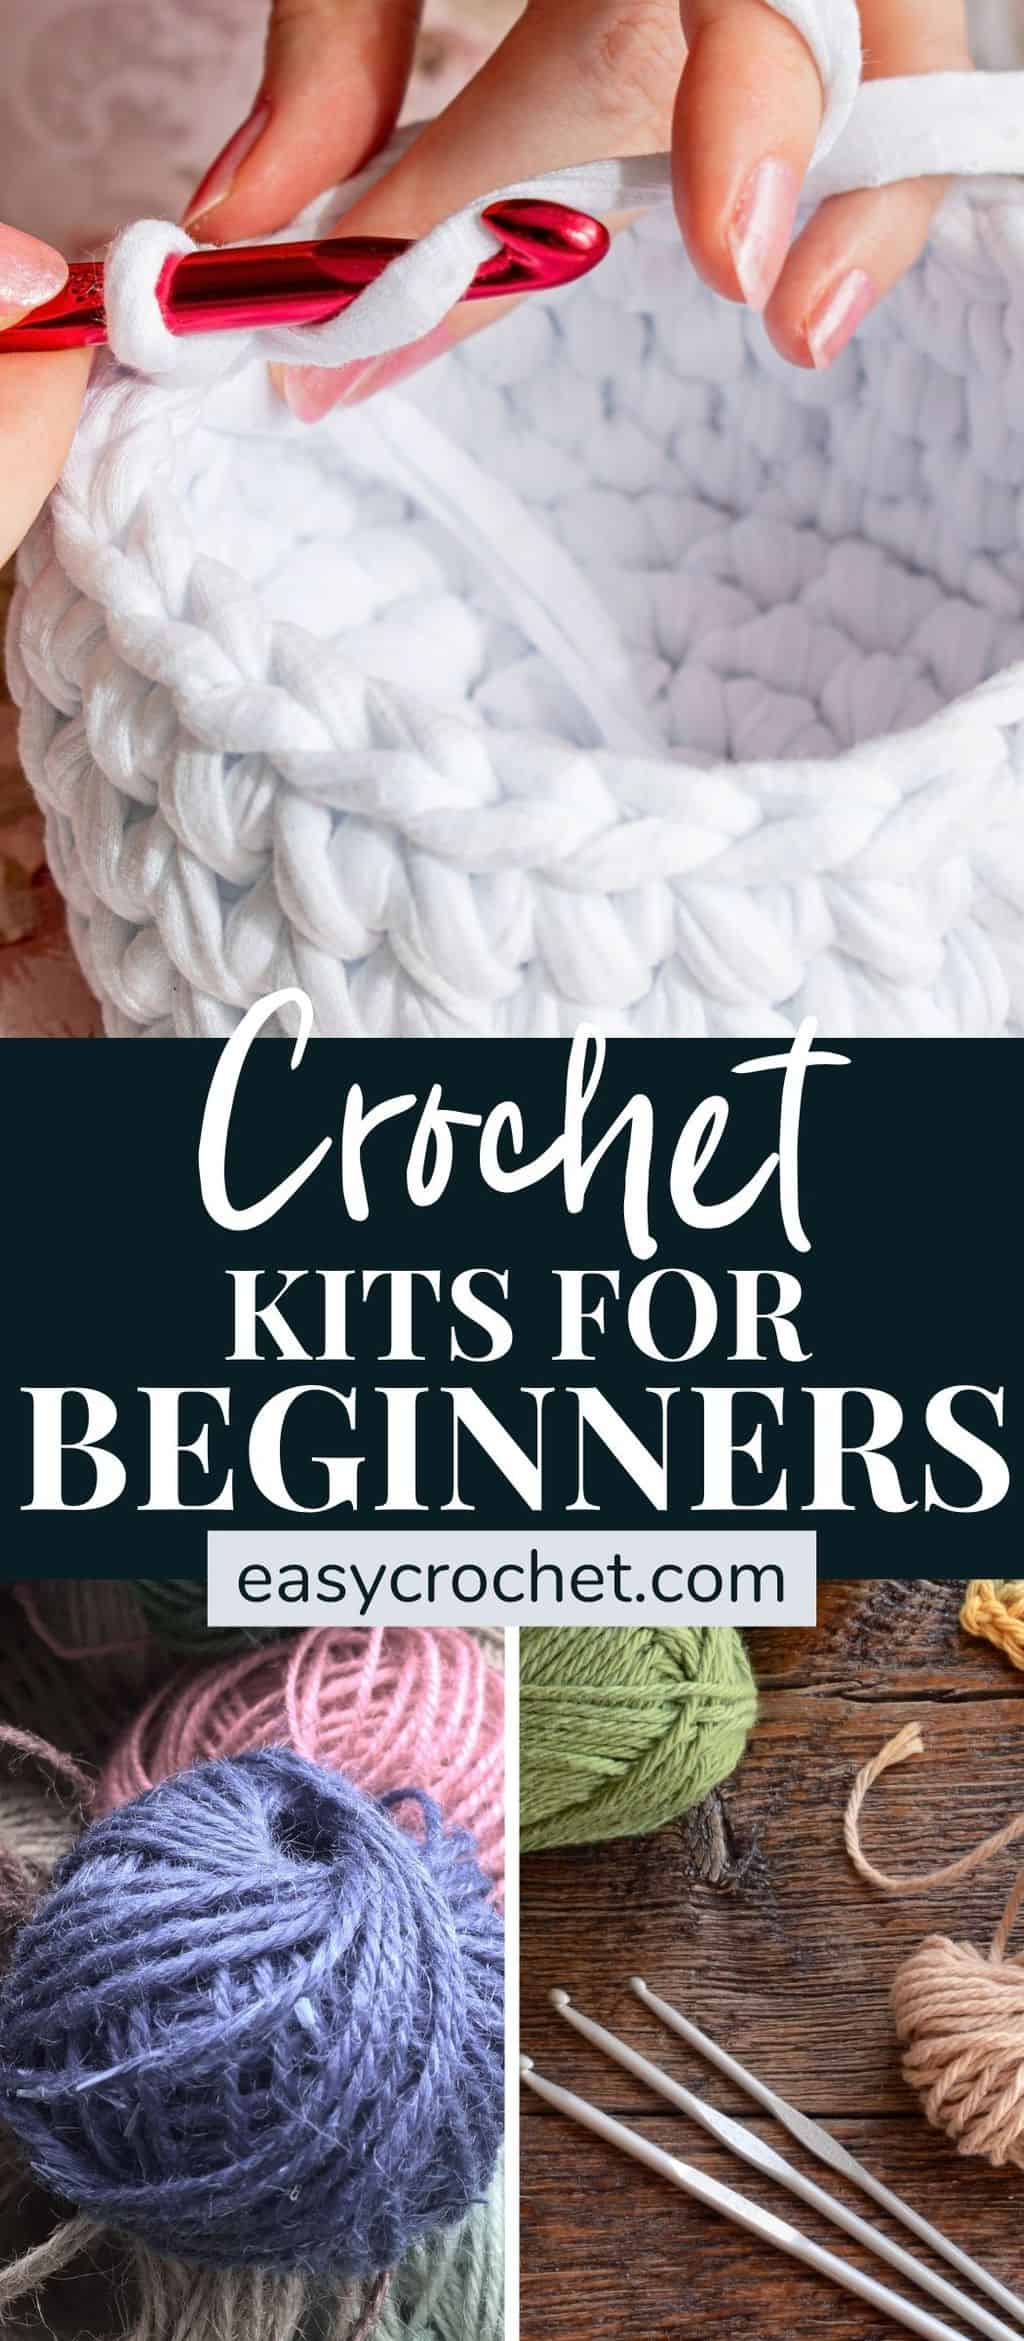 The best kits for beginners to learn how to crochet